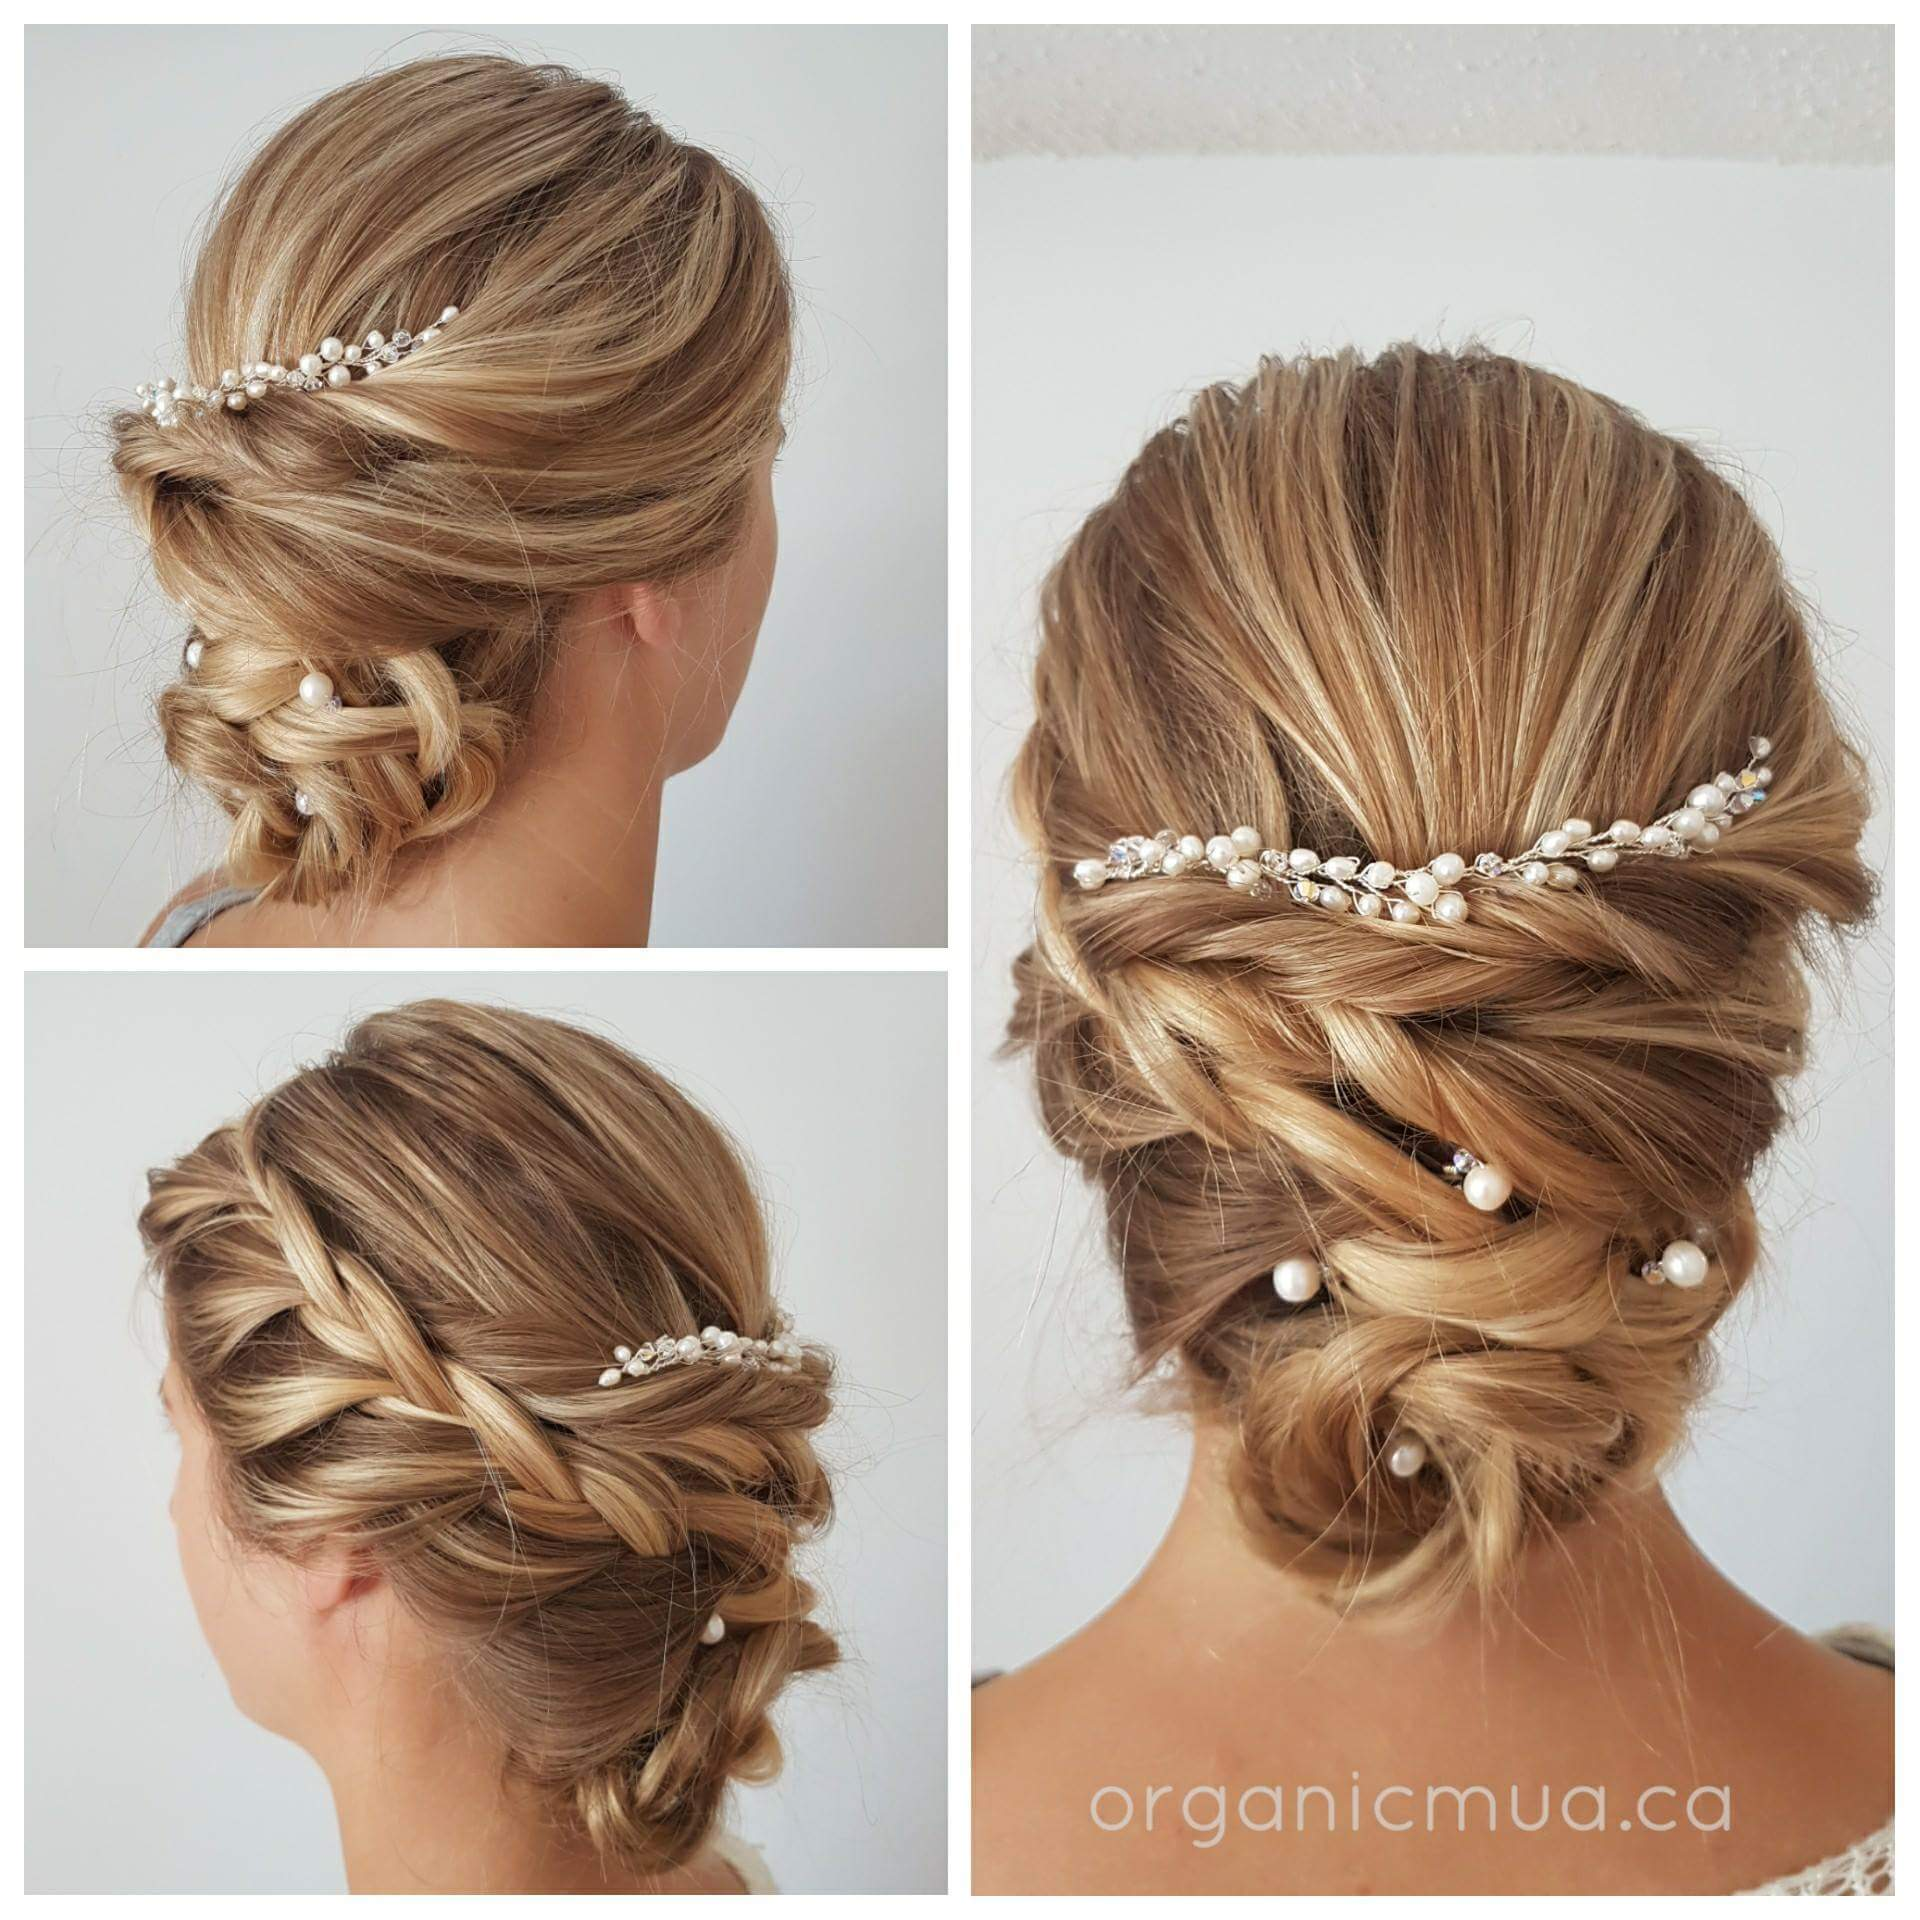 wedding updo blonde hair with hair jewelry by West Coast Jewelry